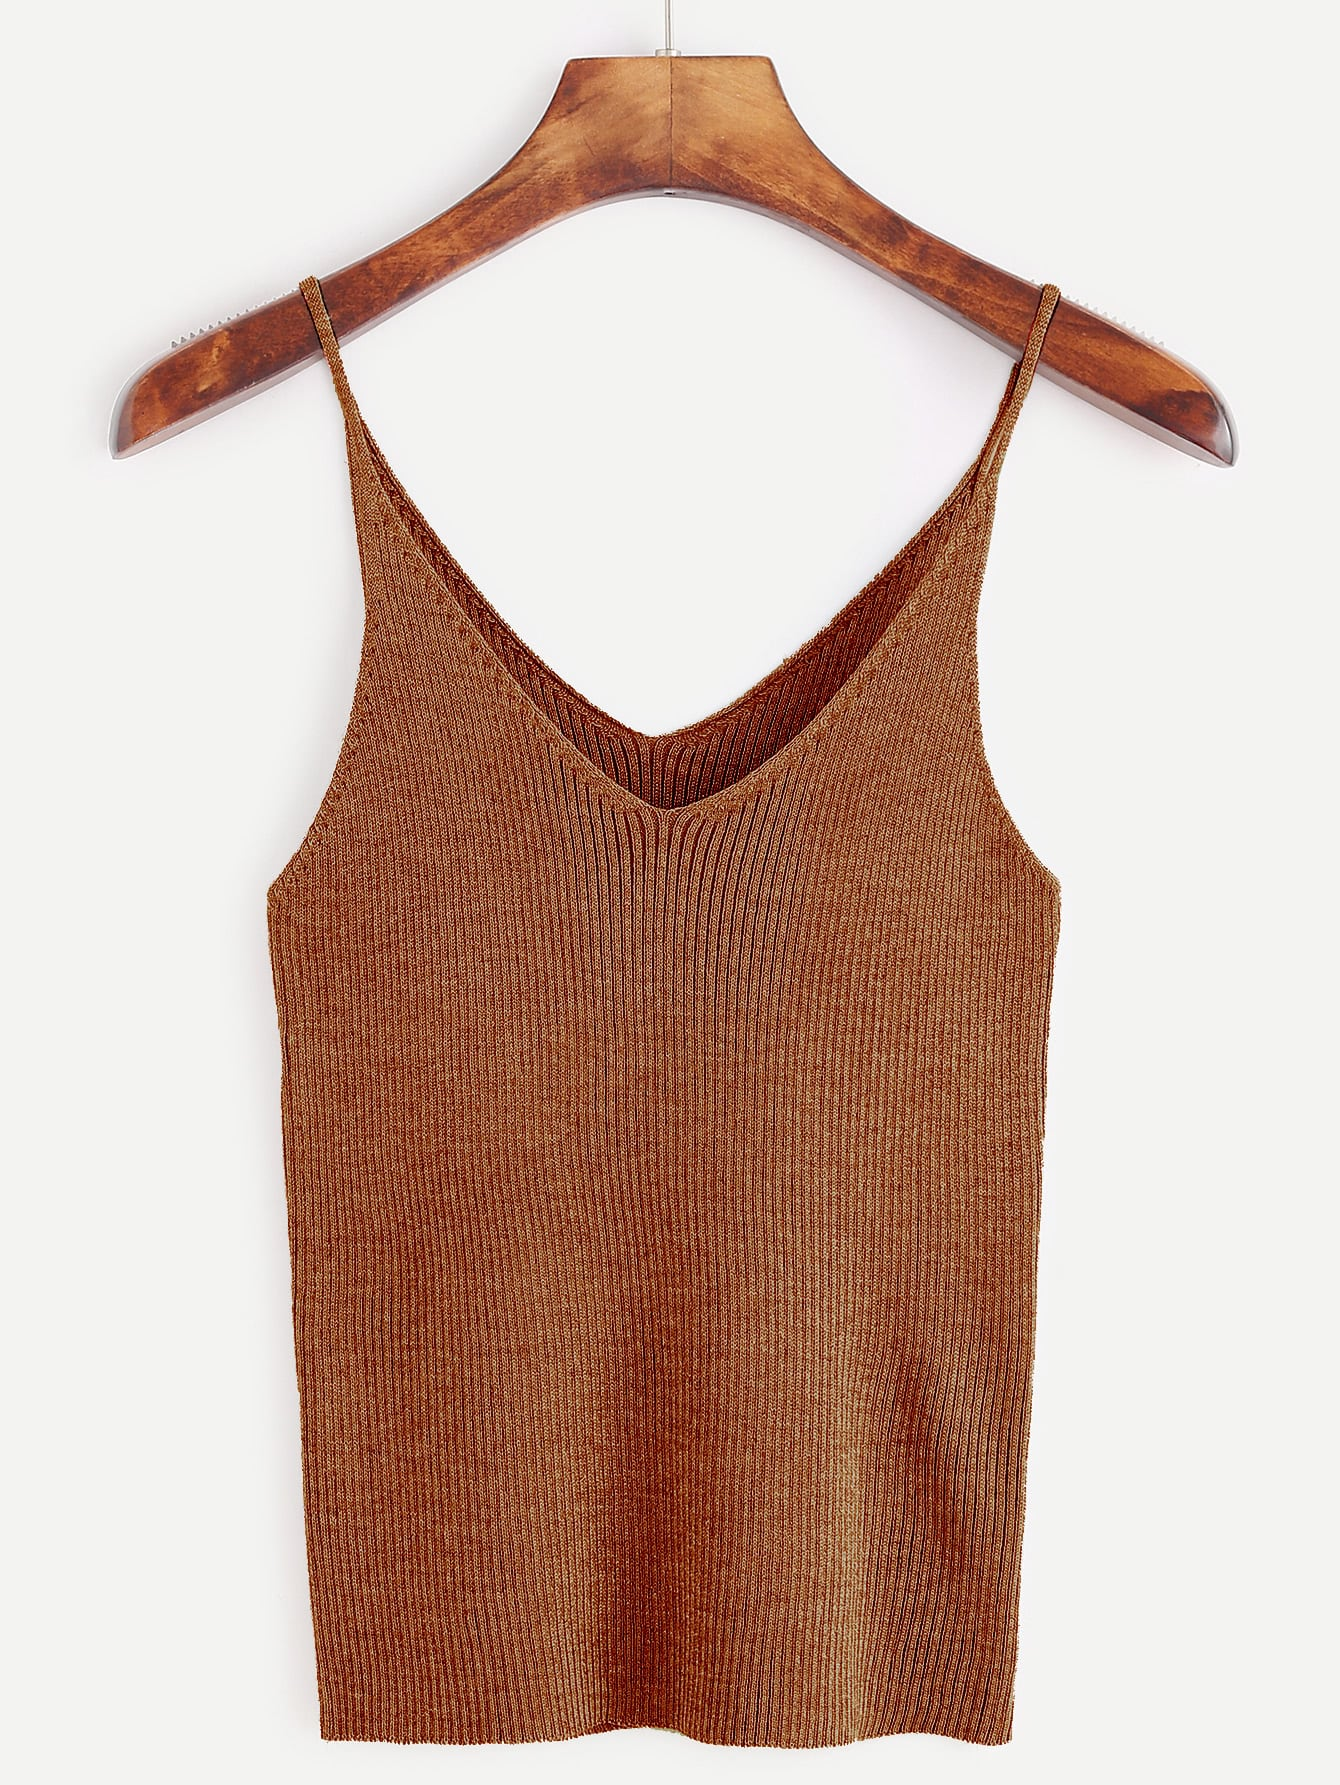 Brown Ribbed Knit Tight Cami Top